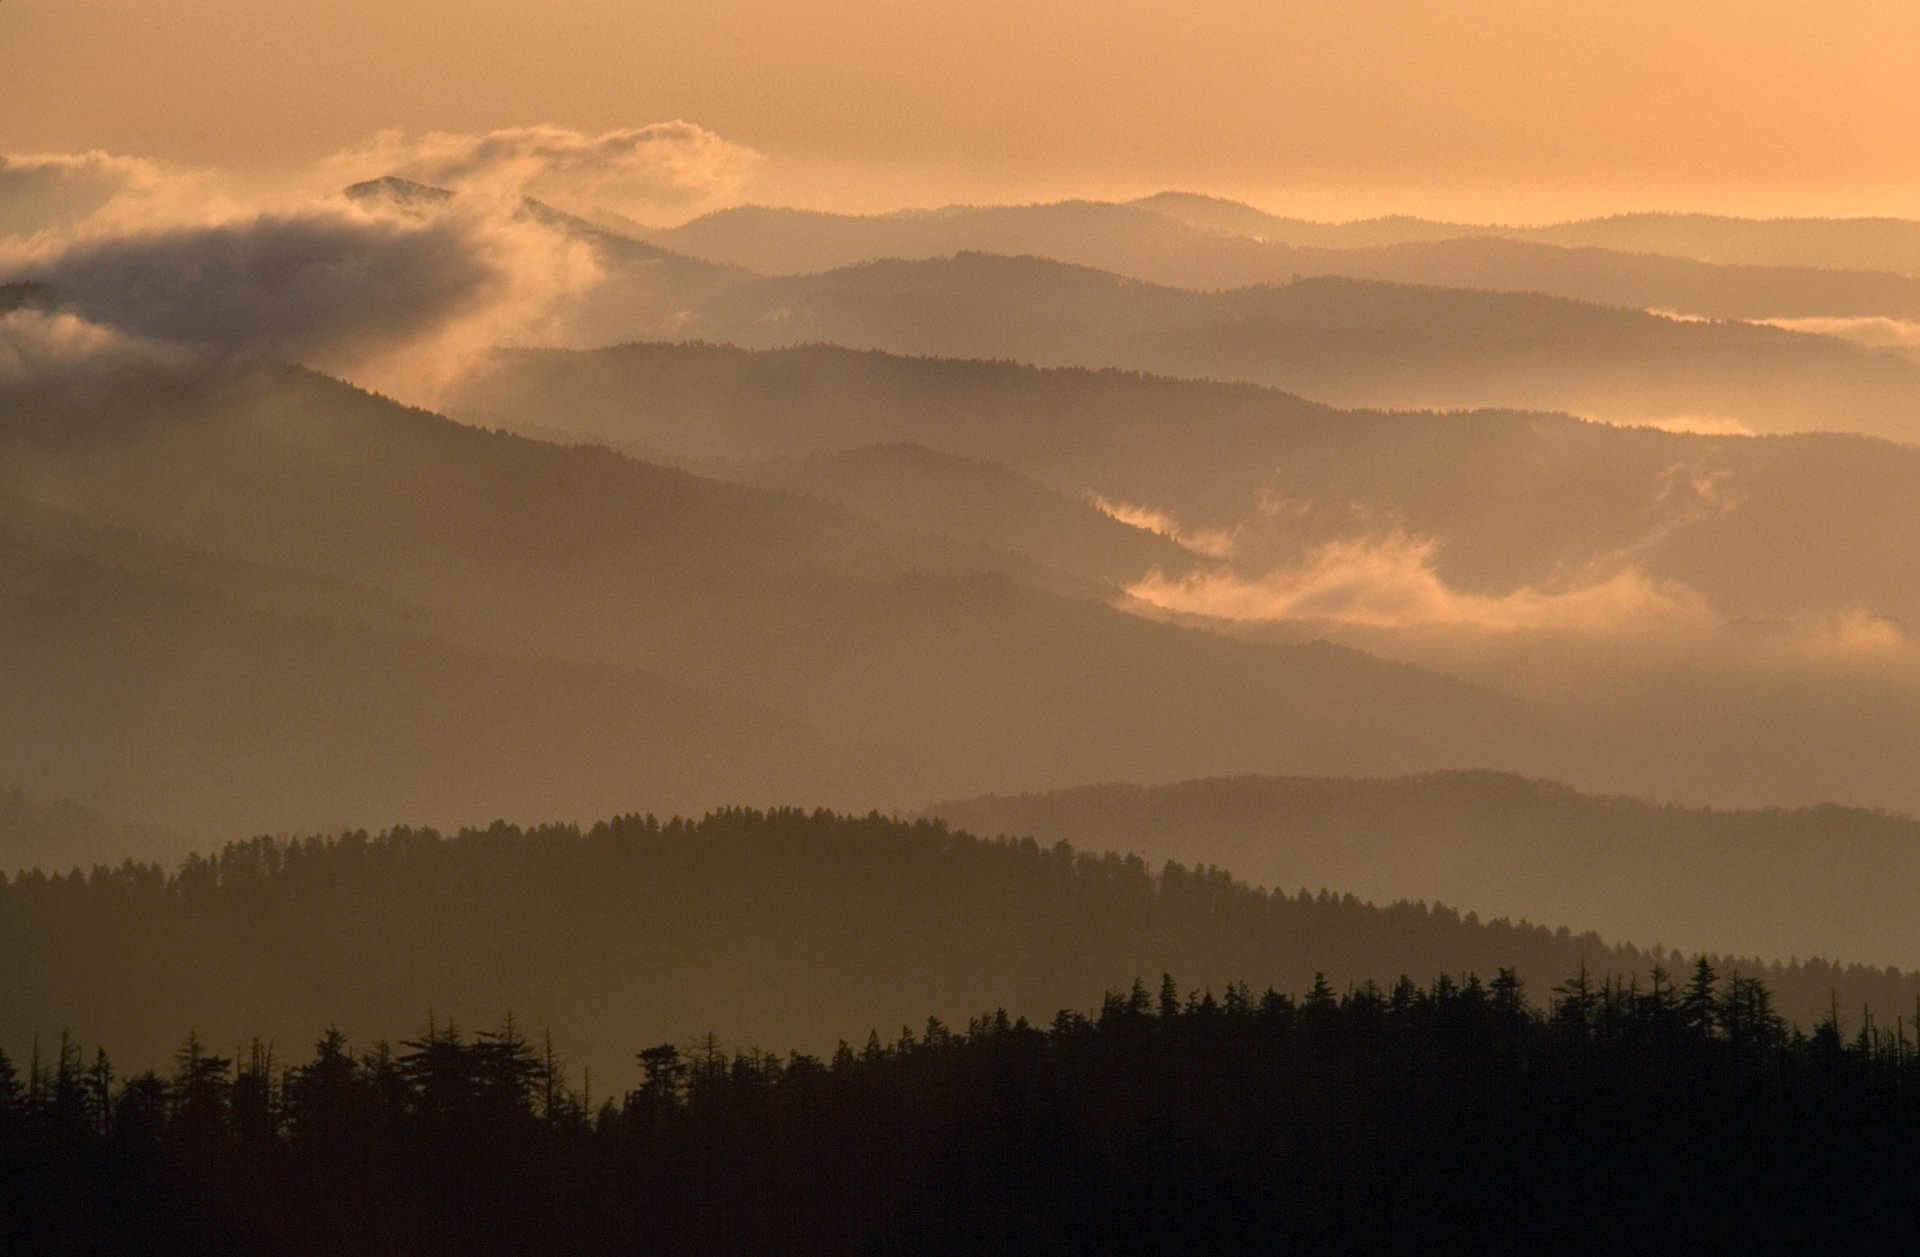 At an elevation of 6643 feet, the highest point along the Appalachian Trail, Clingman's Dome provides spectacular scenic vistas.  Clingman's Dome, Tennessee